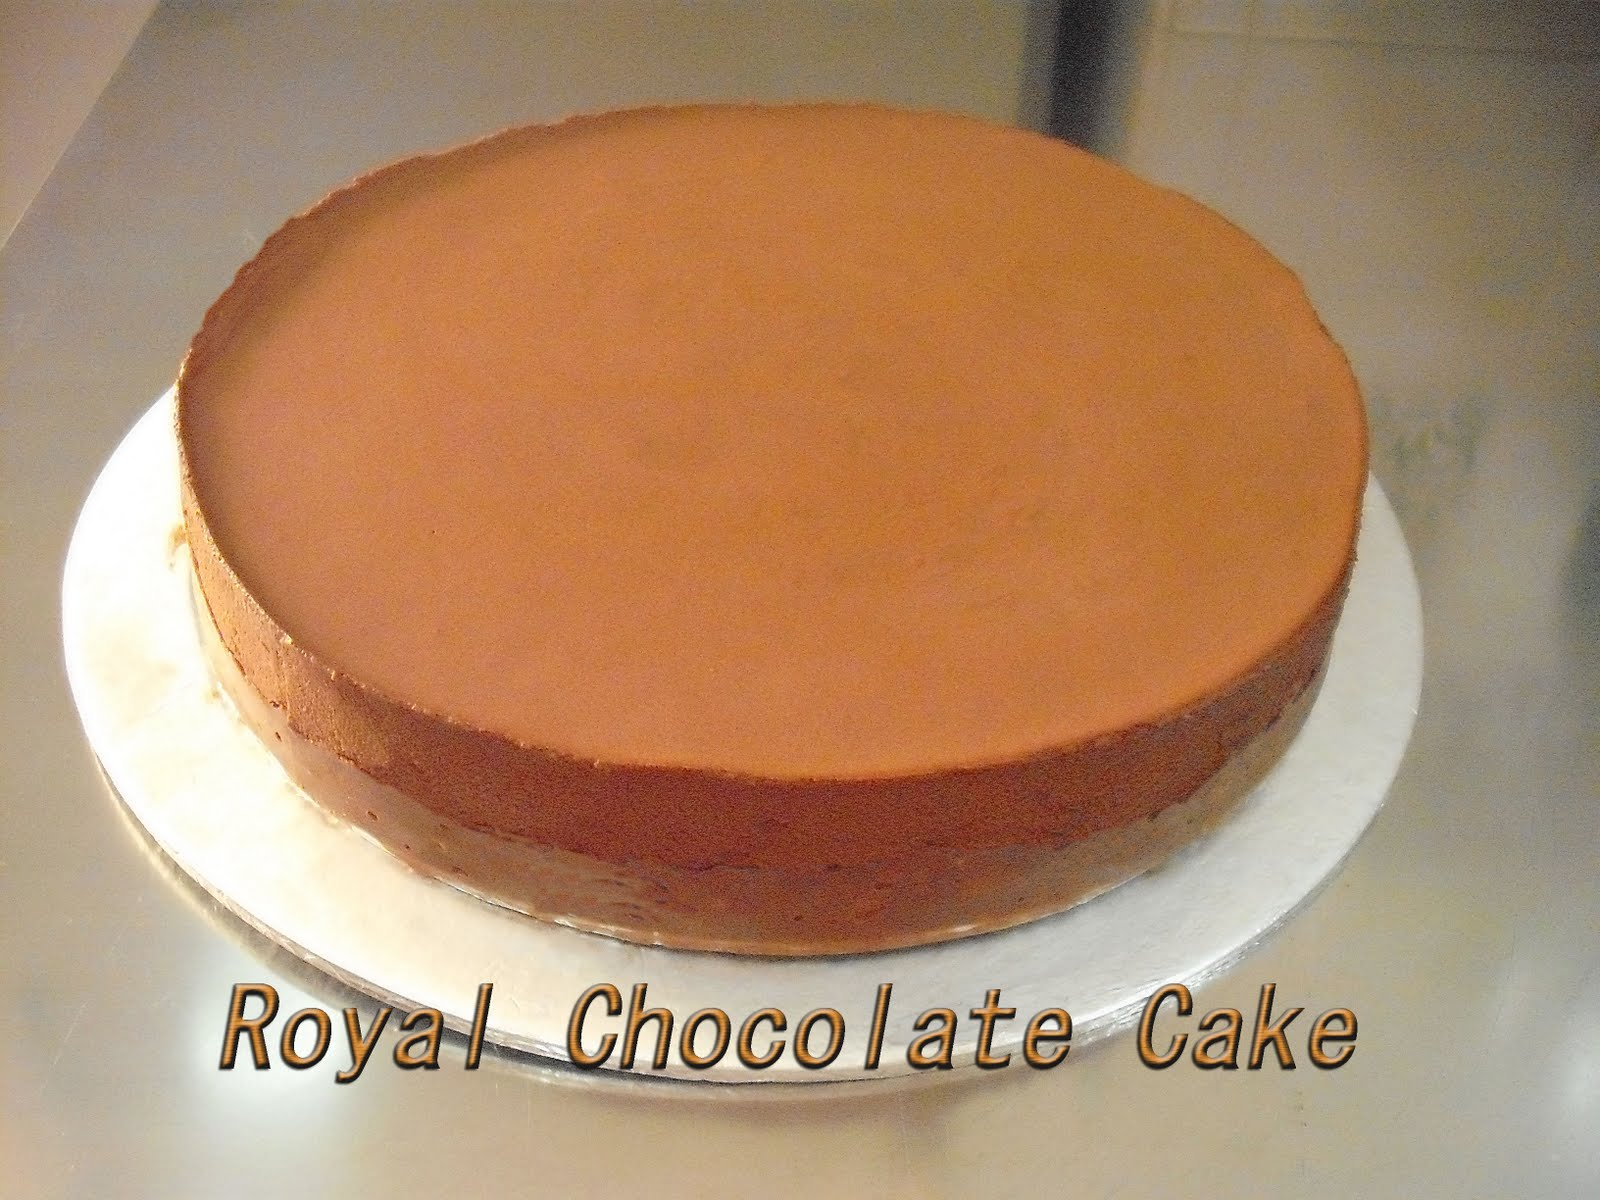 Royal Chocolate Cake Images : My Dream, My Inspiration: Royal Chocolate Cake